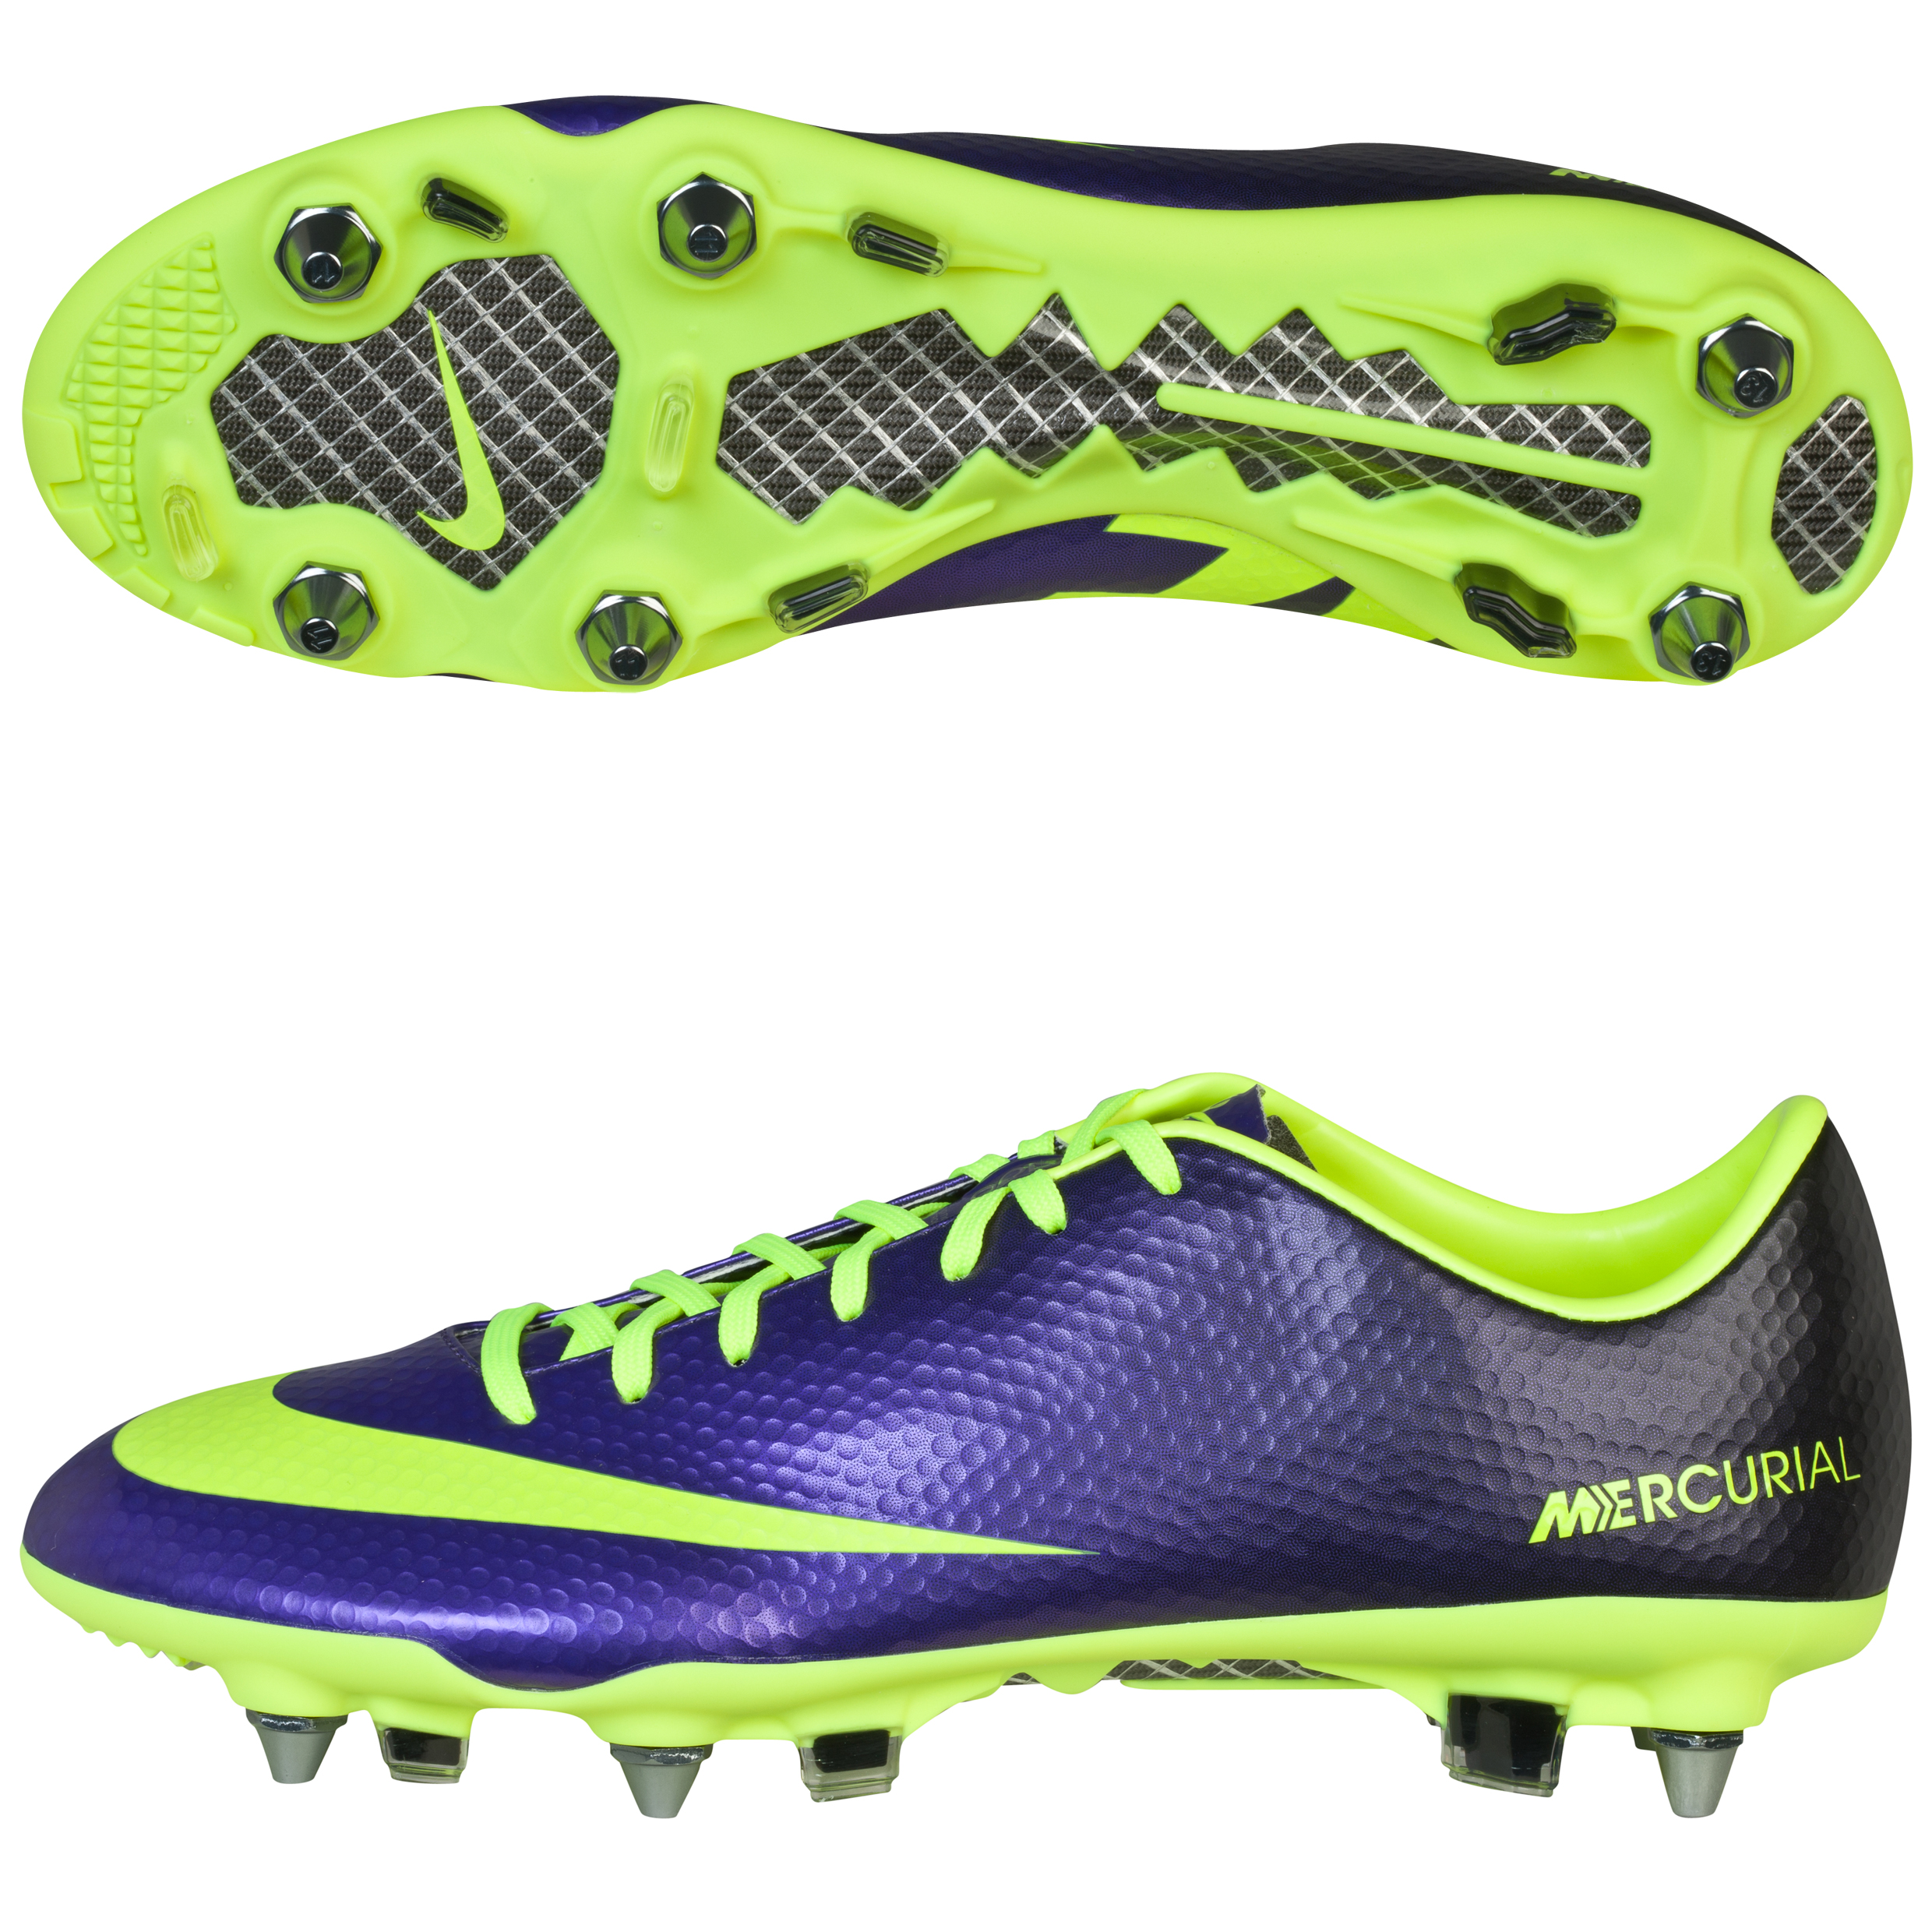 Nike Mercurial Vapor Ix Soft Ground Pro Football Boots  Electro PurpleVoltBlack Purple